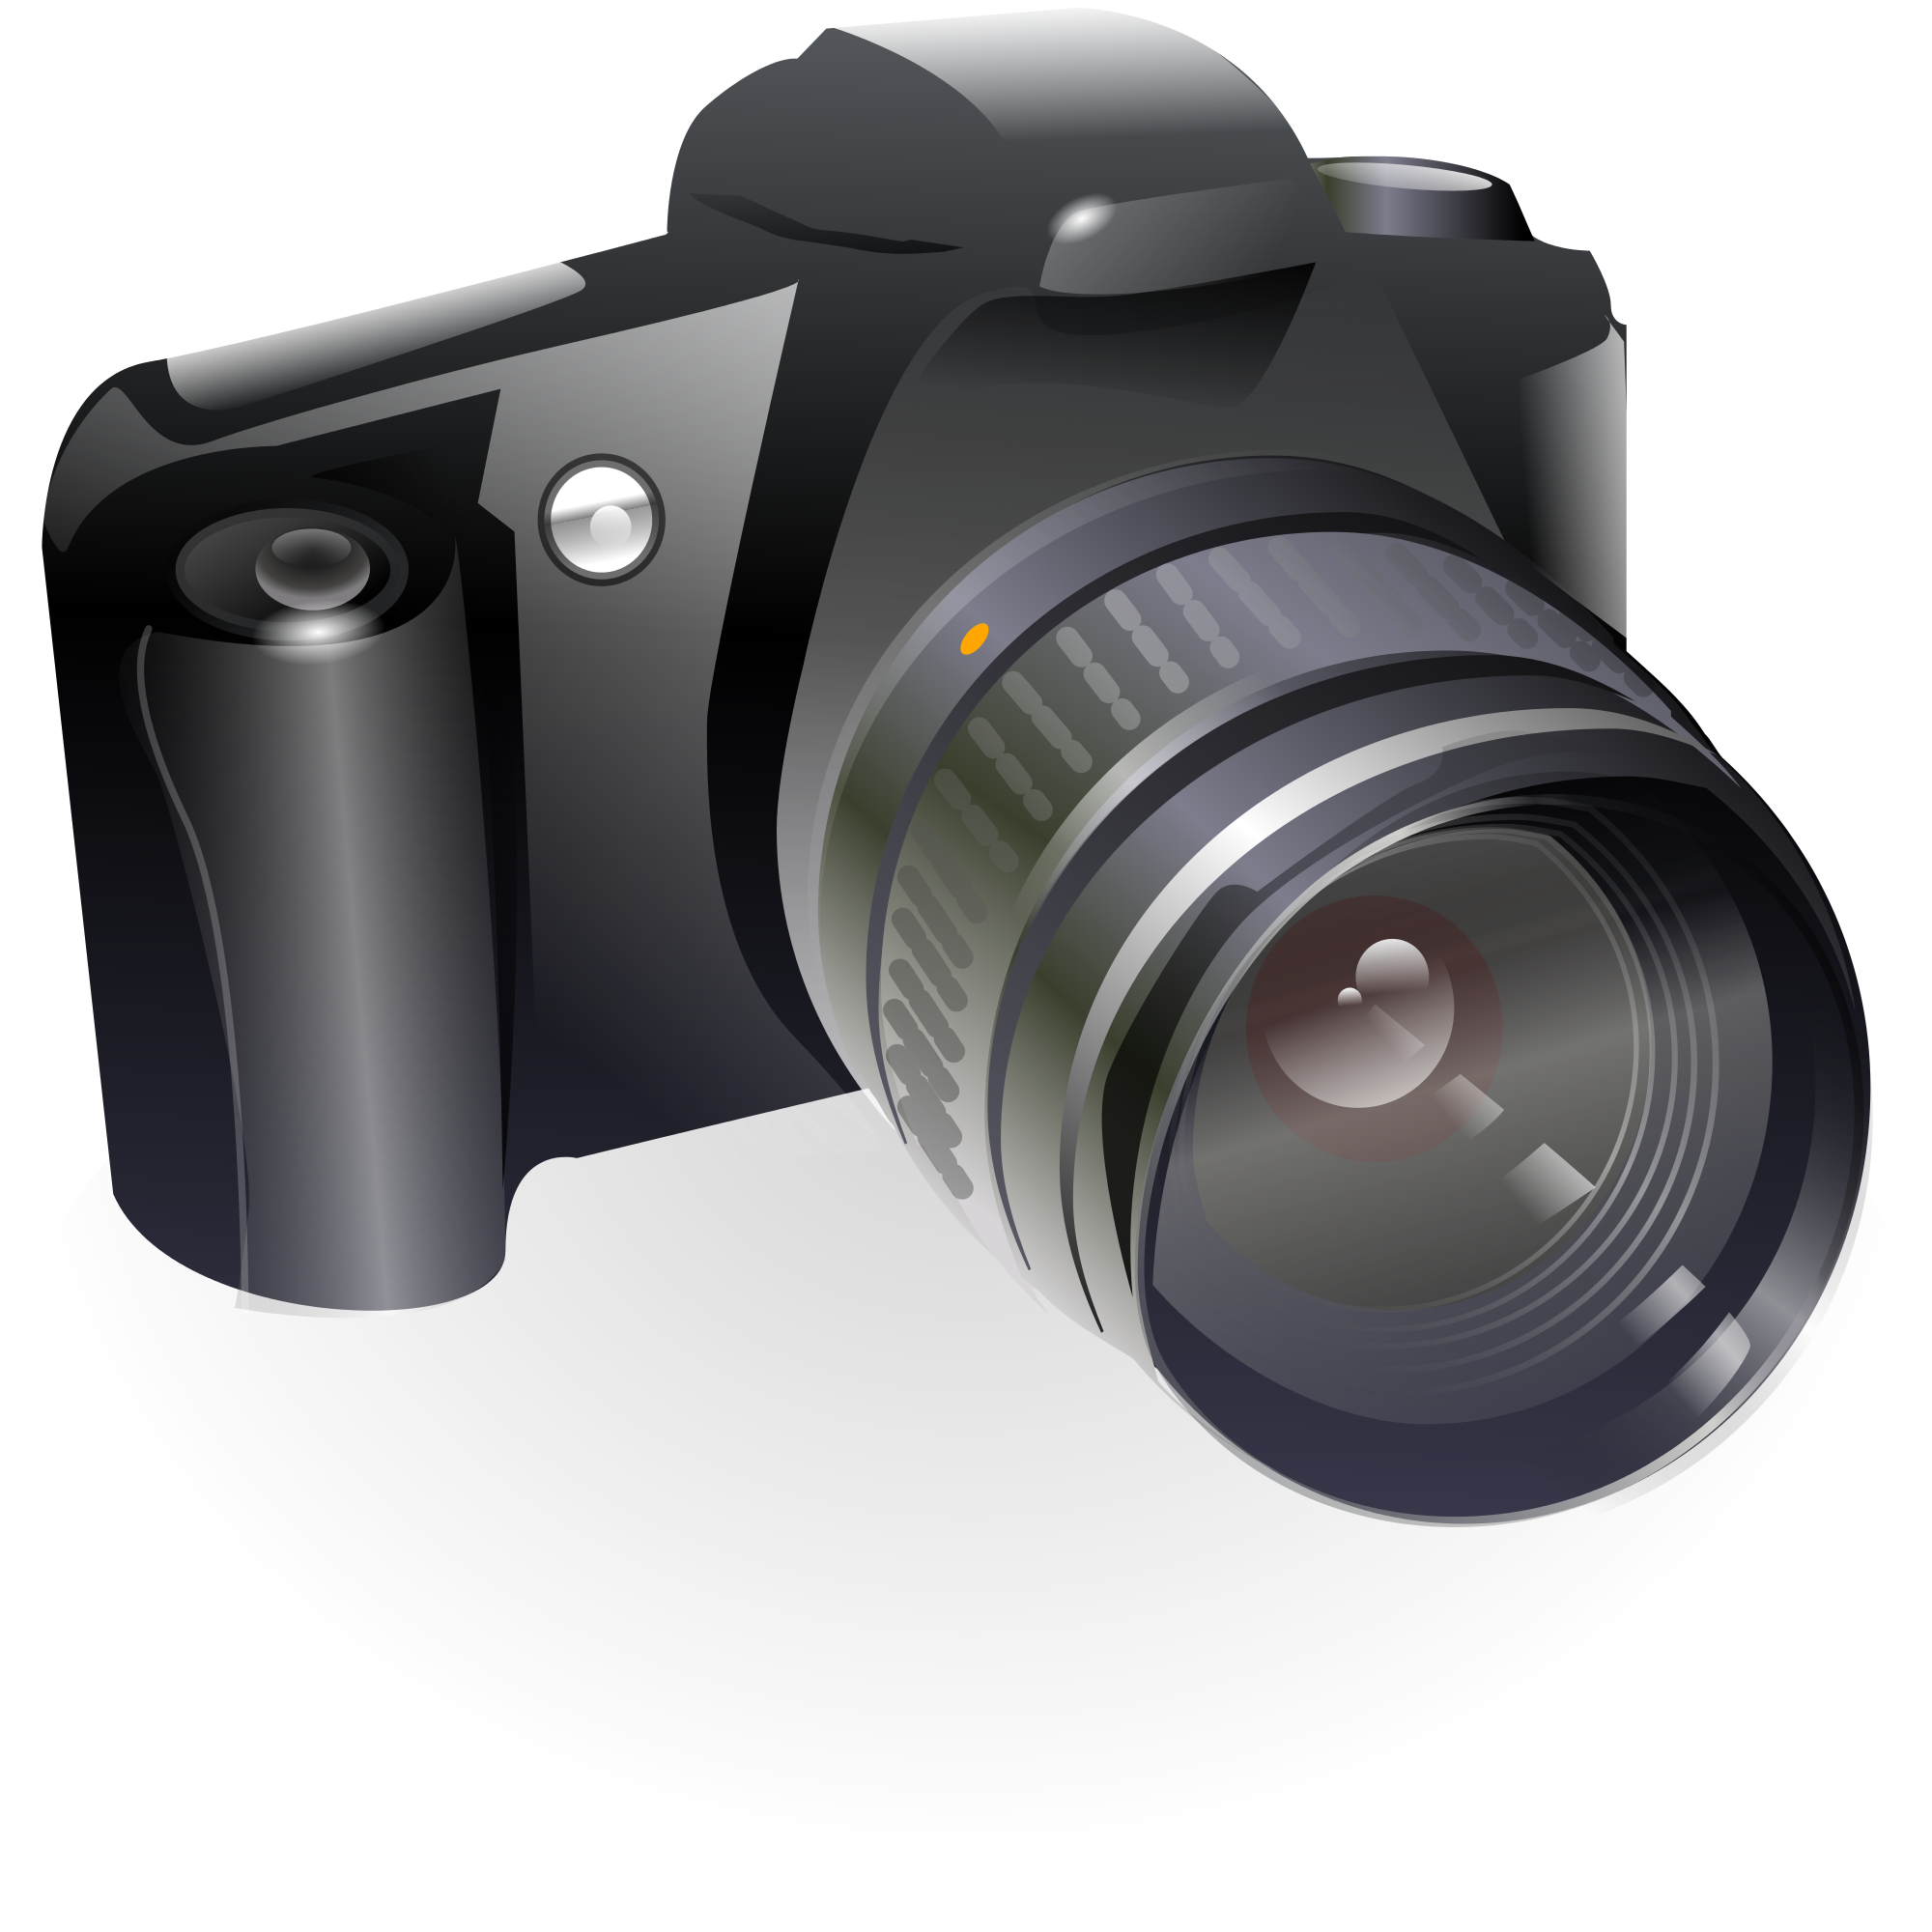 File:Canon EOS Rebel.svg.